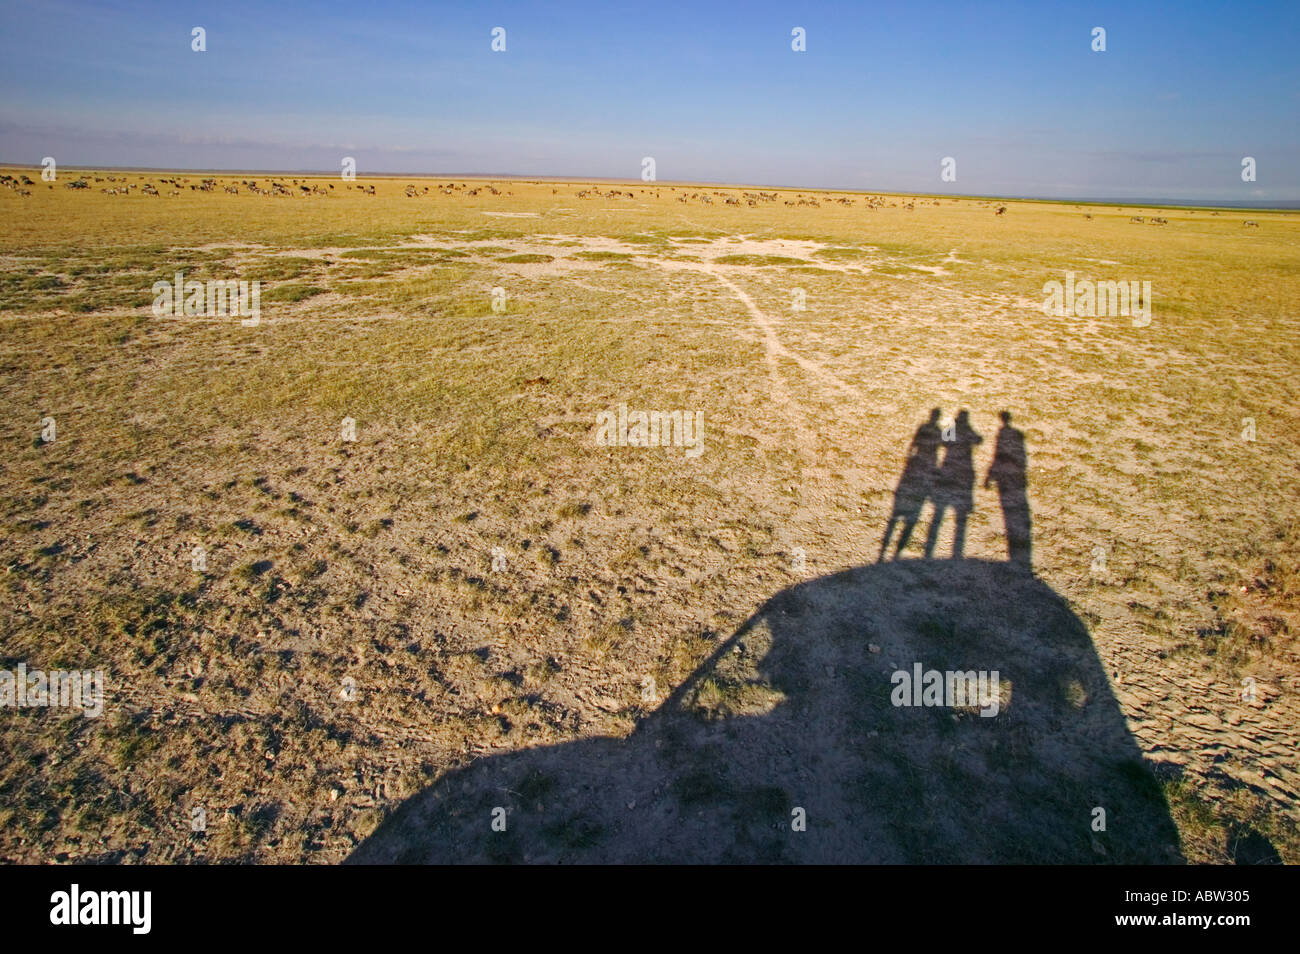 Tourism Shadow of car and people looking for wildlife in park Amboseli National Park Kenya - Stock Image